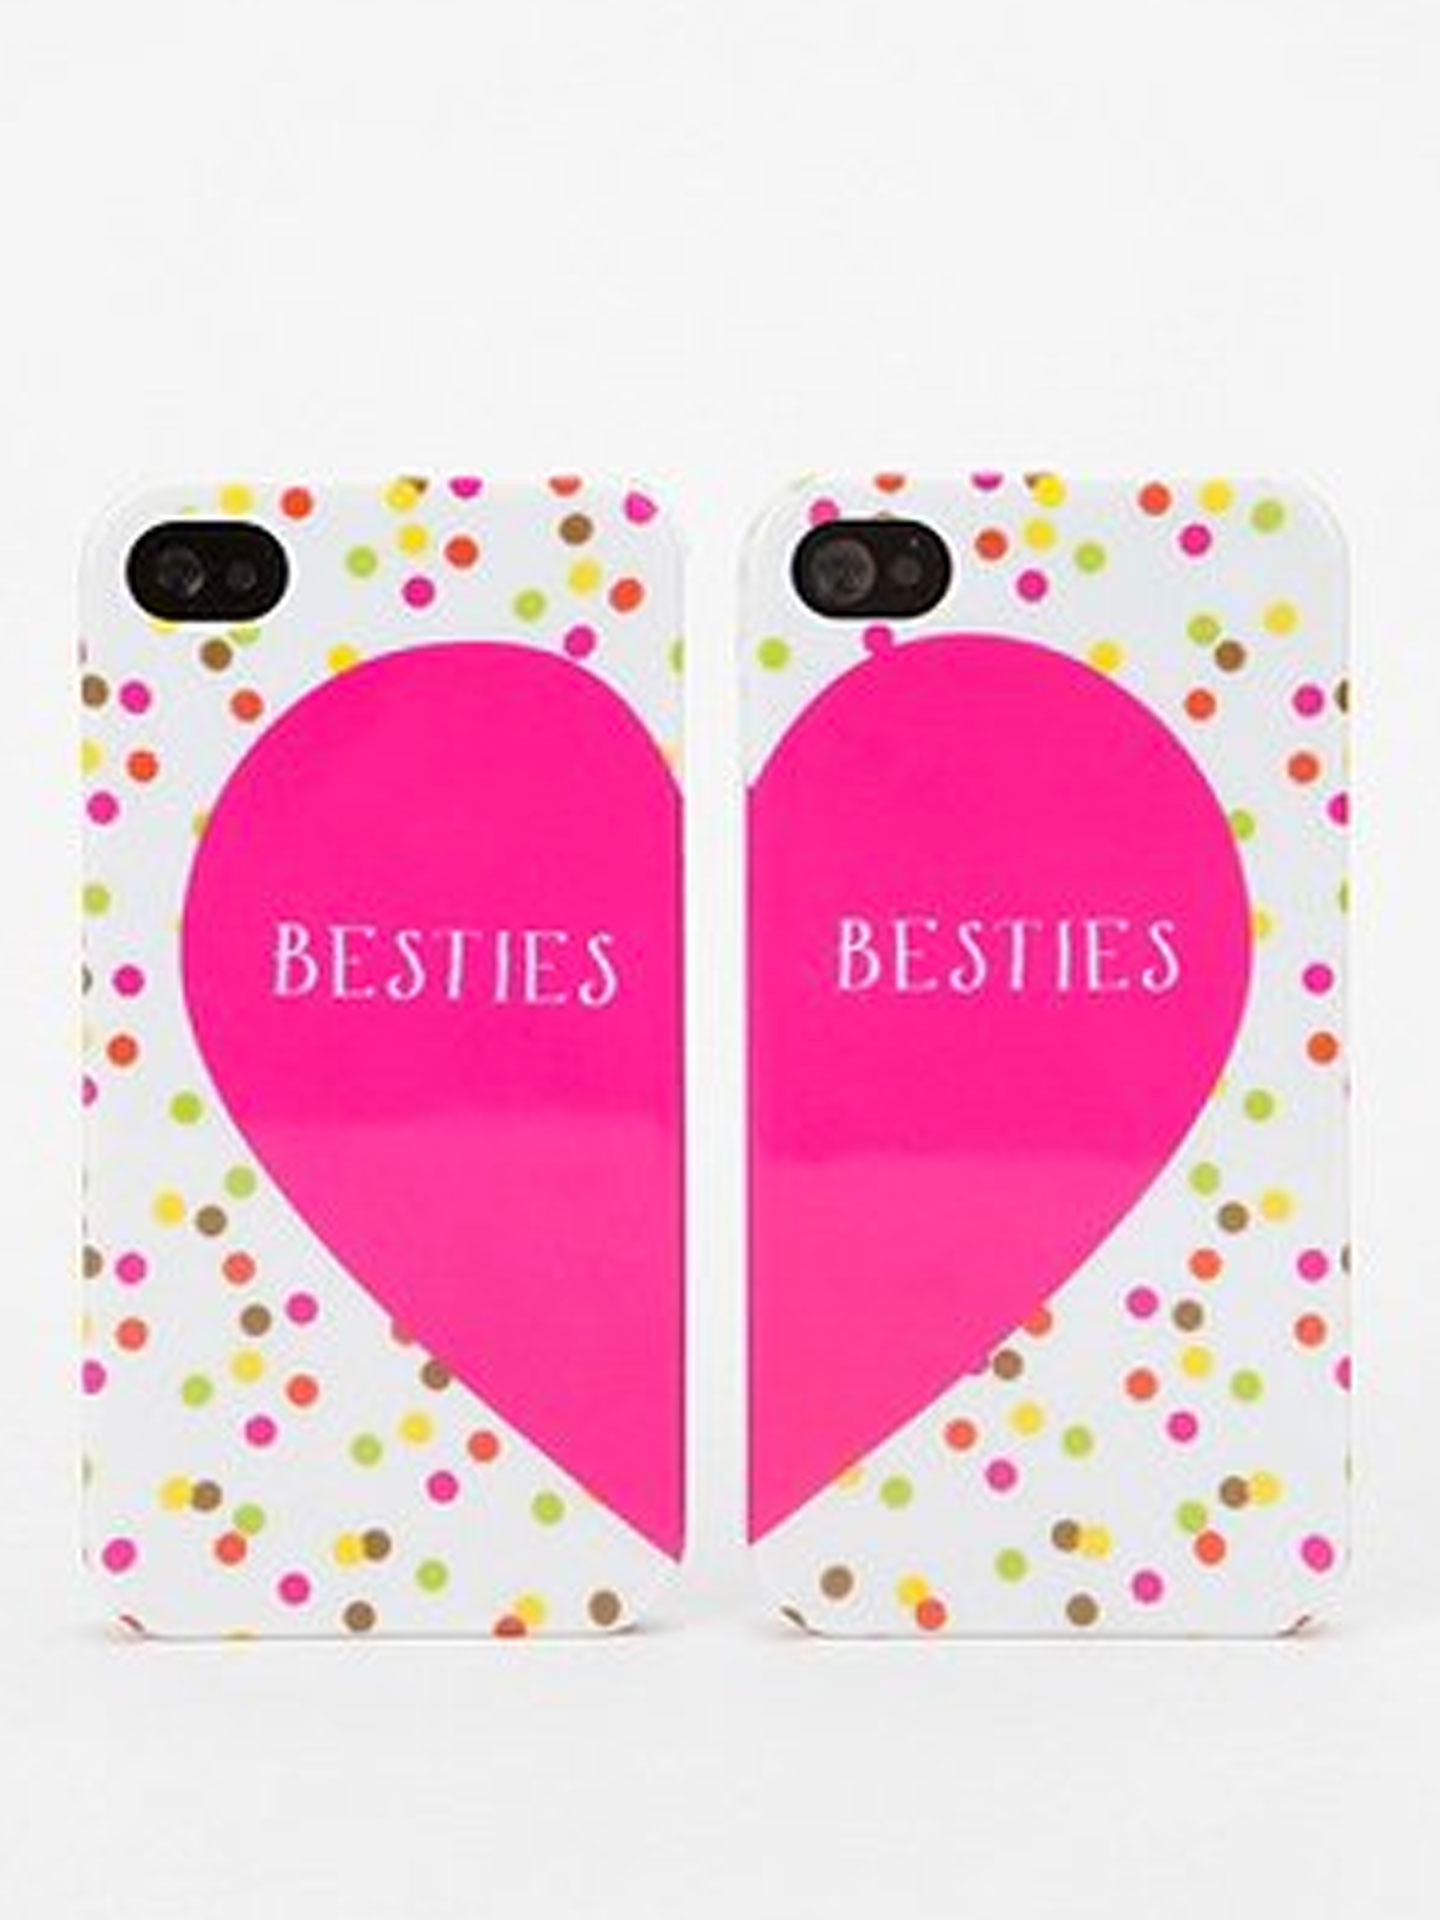 Friendship anniversary gifts best friend gift ideas for Best friend anniversary gift ideas